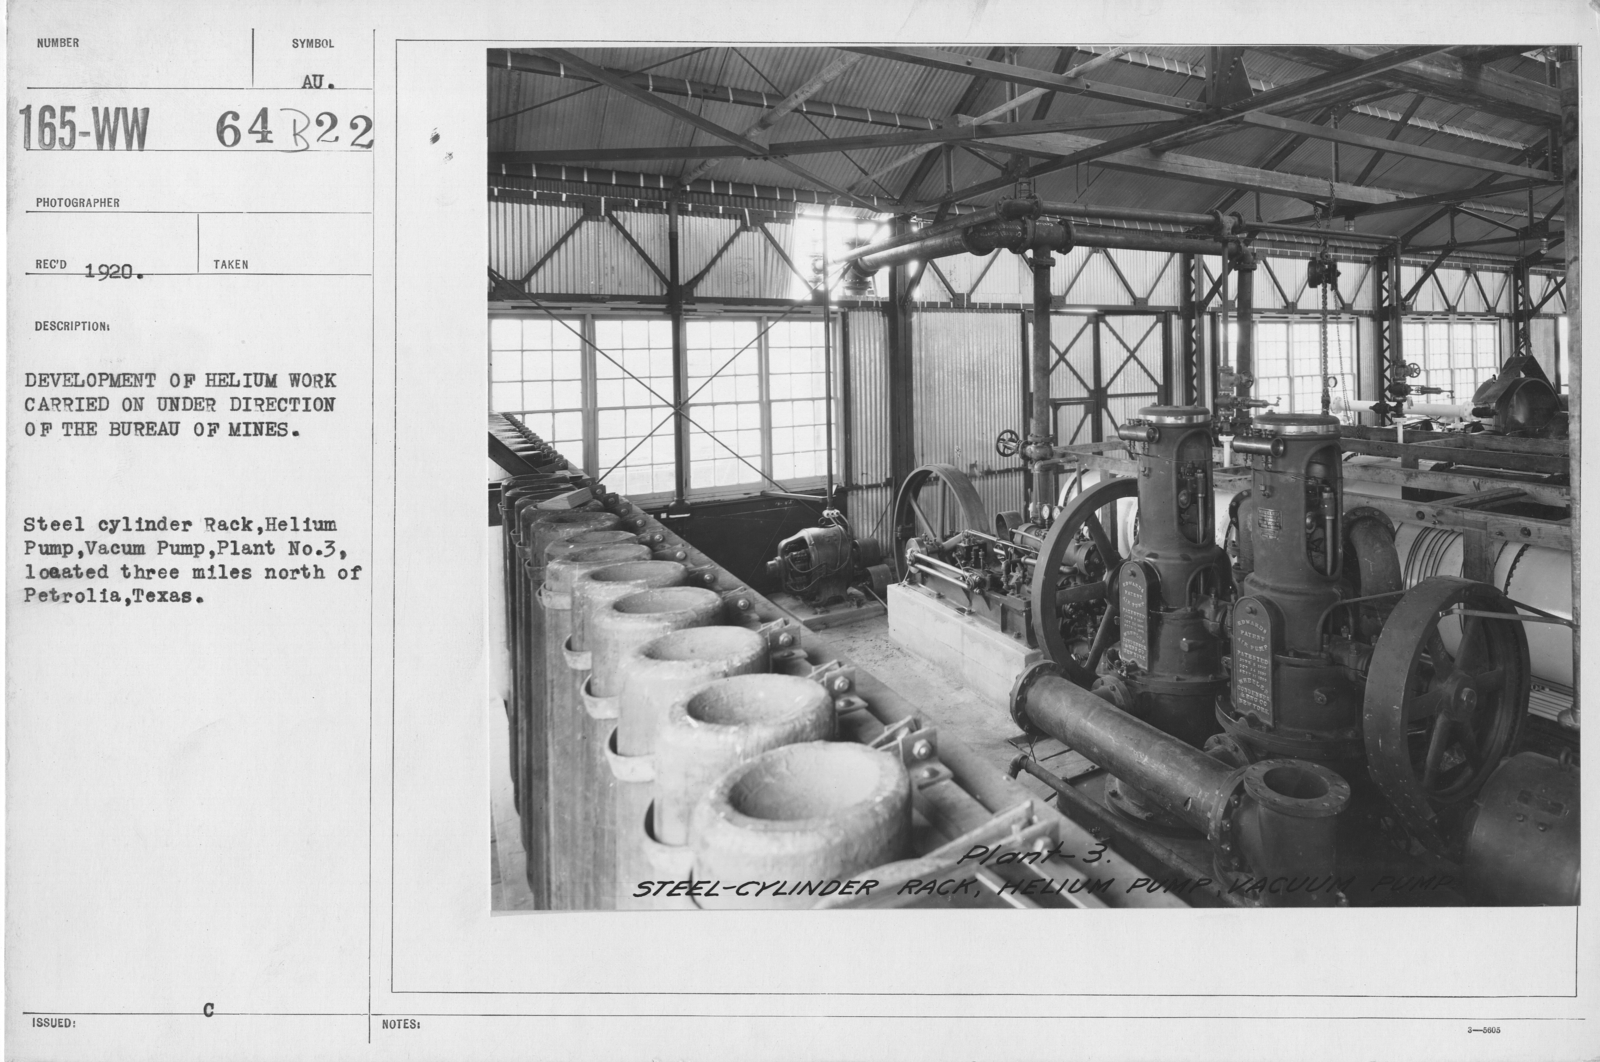 Balloons - Helium Plants - Development of helium work carried on under direction of the Bureau of Mines. Steel cylinder Rack, Helium Pump, Vaccuum Pump, Plant No. 3, located three miles north of Petrolia, Texas